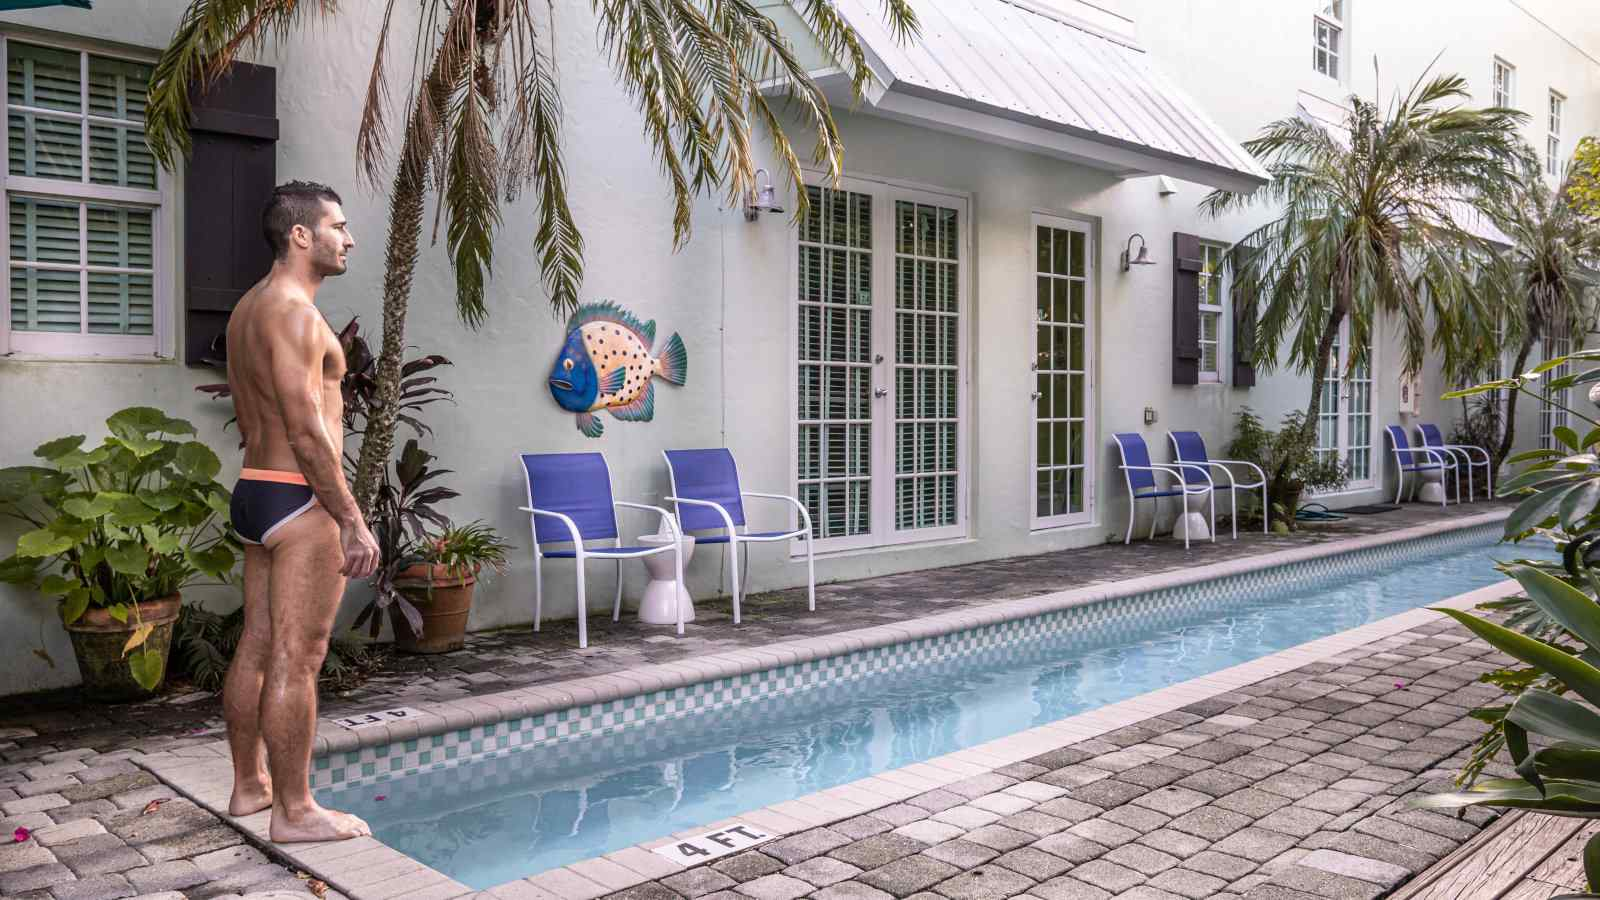 The Pineapple Point Guesthouse in Fort Lauderdale is a luxurious clothing-optional and male-only choice of gay accommodation